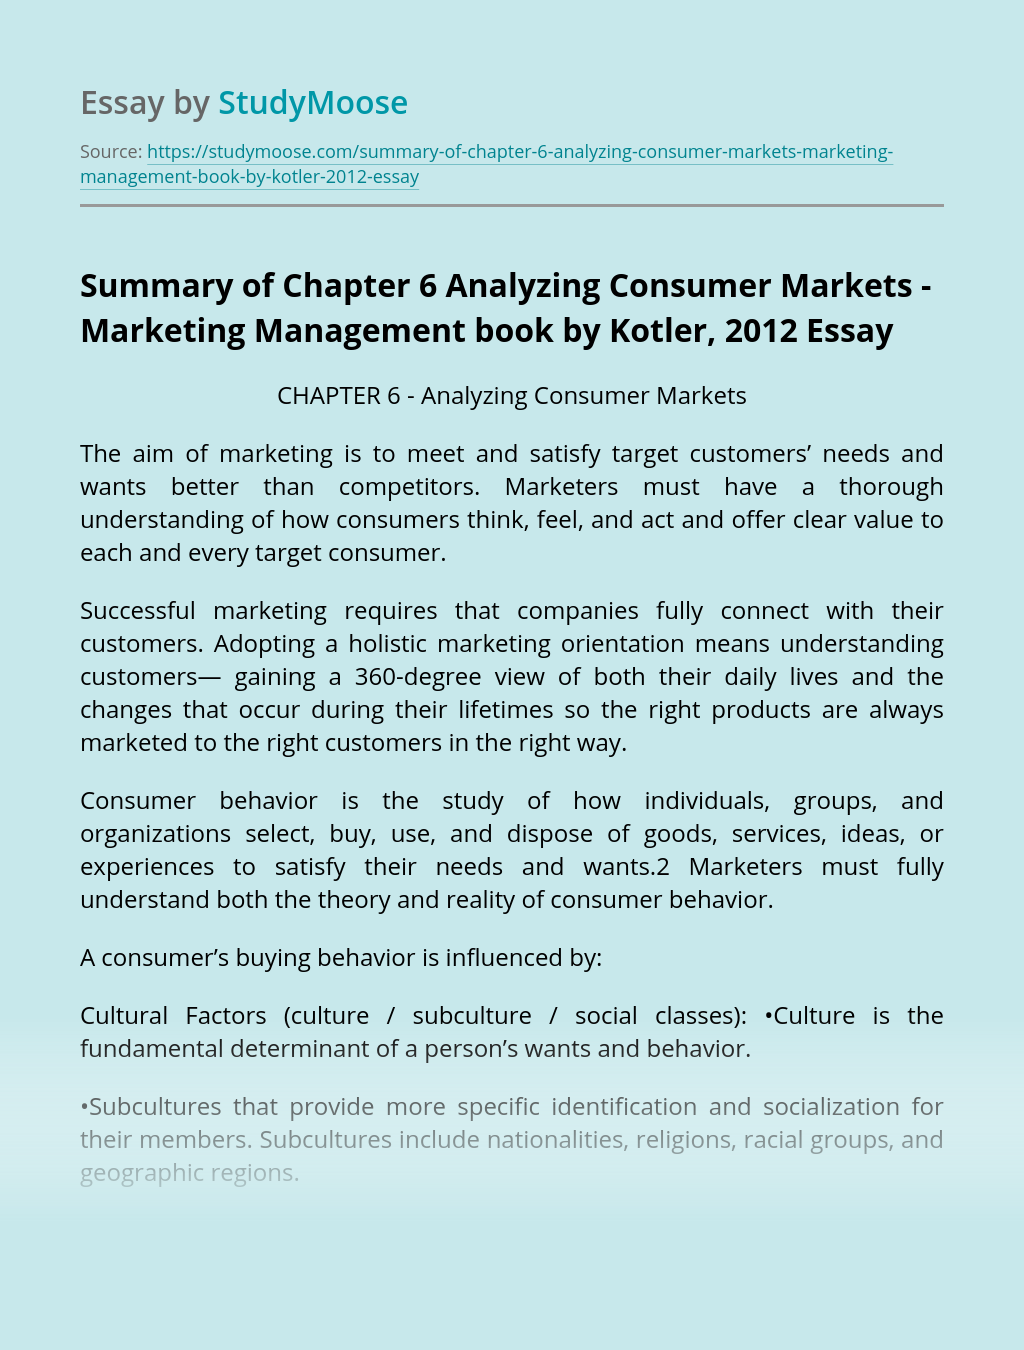 Summary of Chapter 6 Analyzing Consumer Markets - Marketing Management book by Kotler, 2012